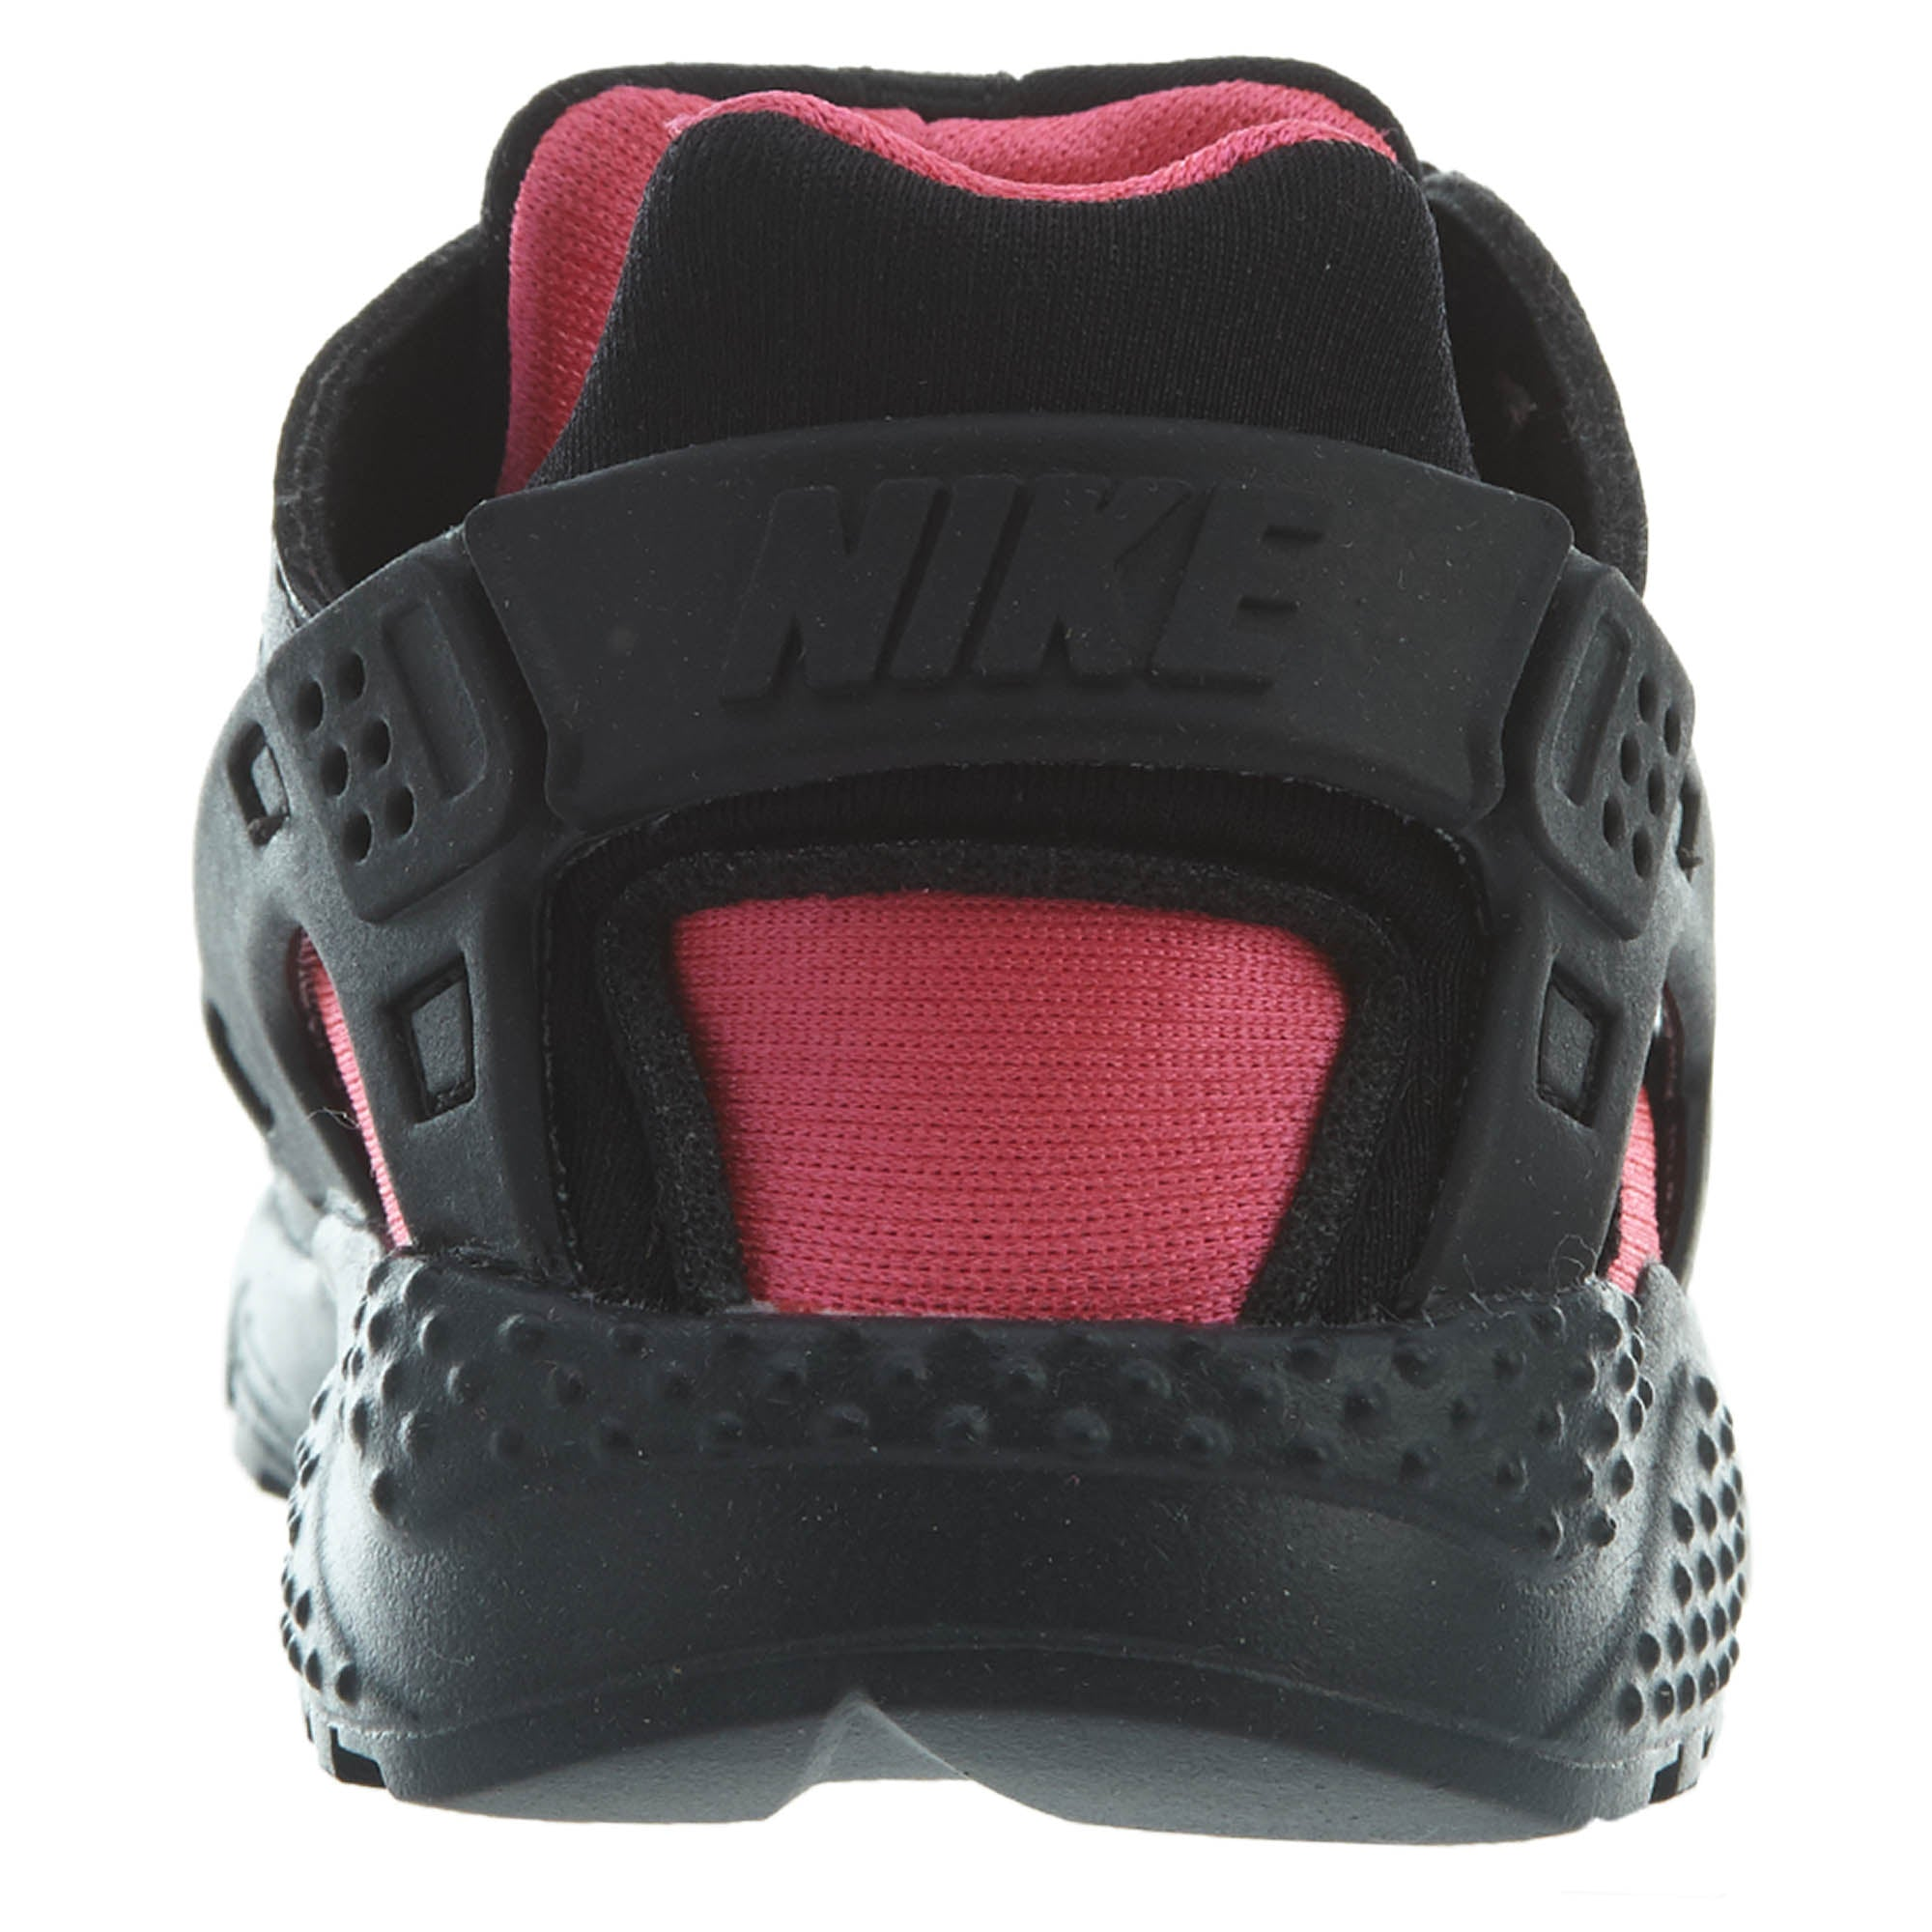 bbac894d27cc9 Nike Huarache Run Toddlers Style   704950-037. NIKE   Baby   Toddler Shoes